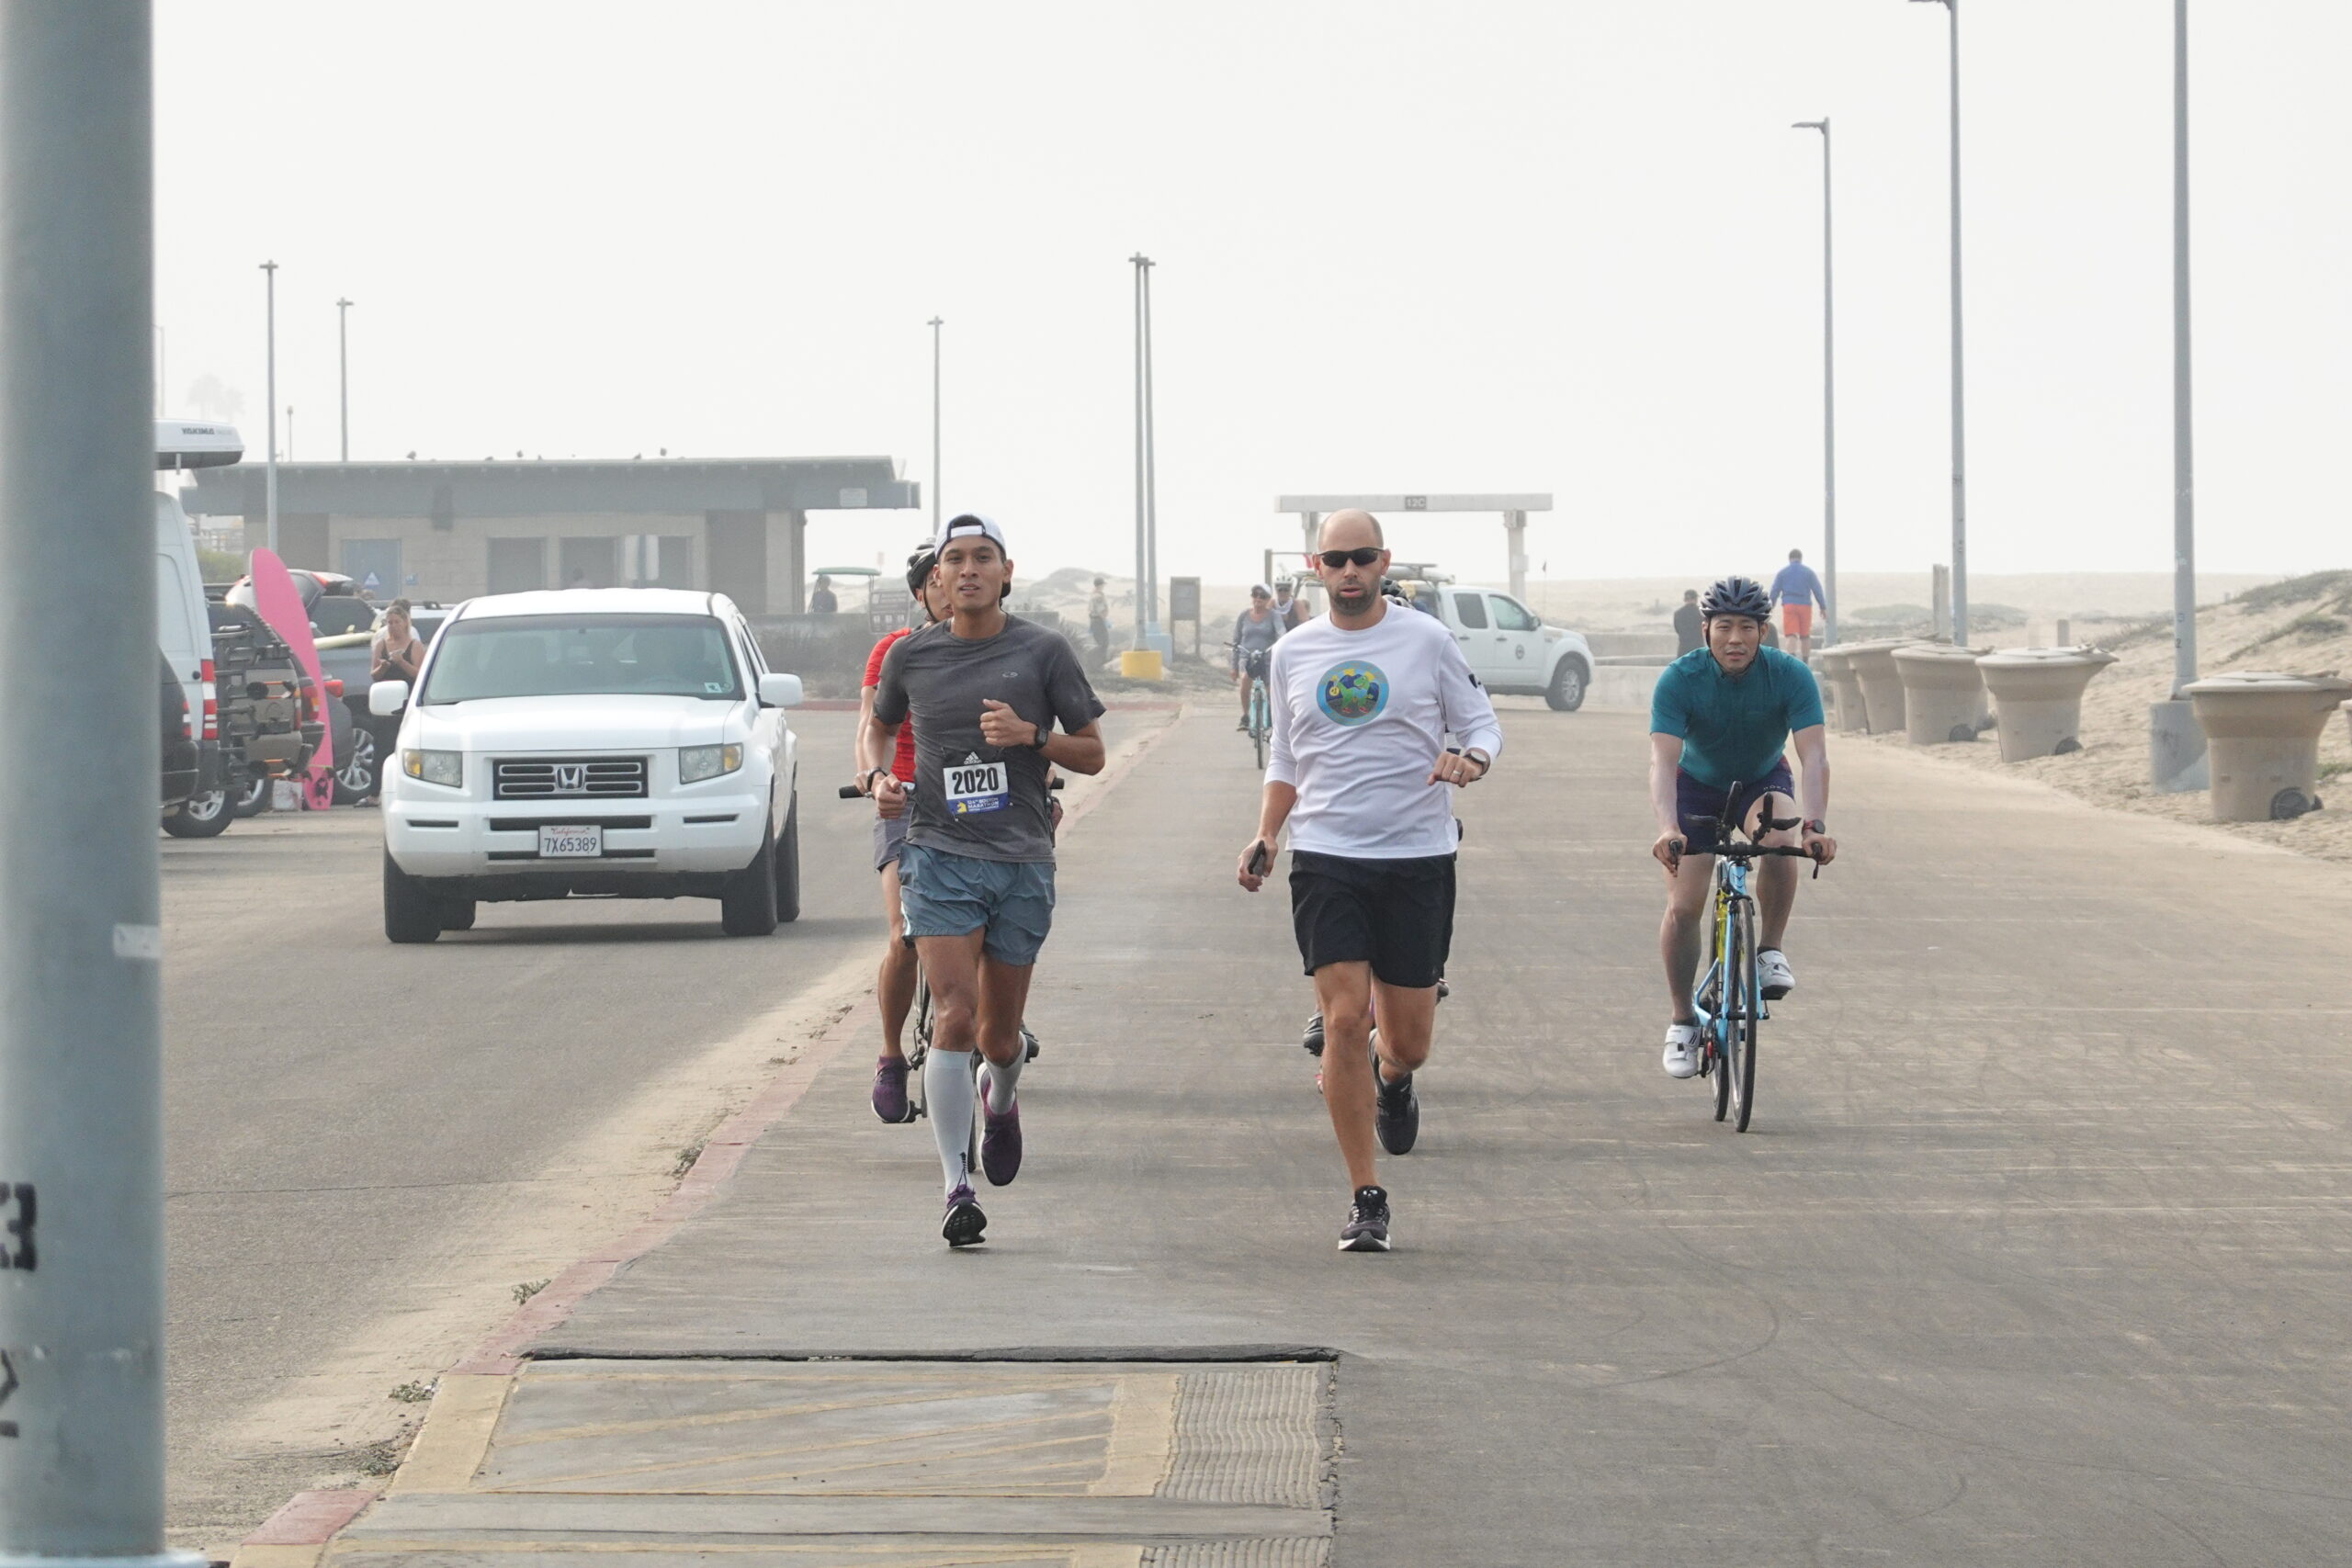 Justin running with another runners and cyclists on the beach bike path